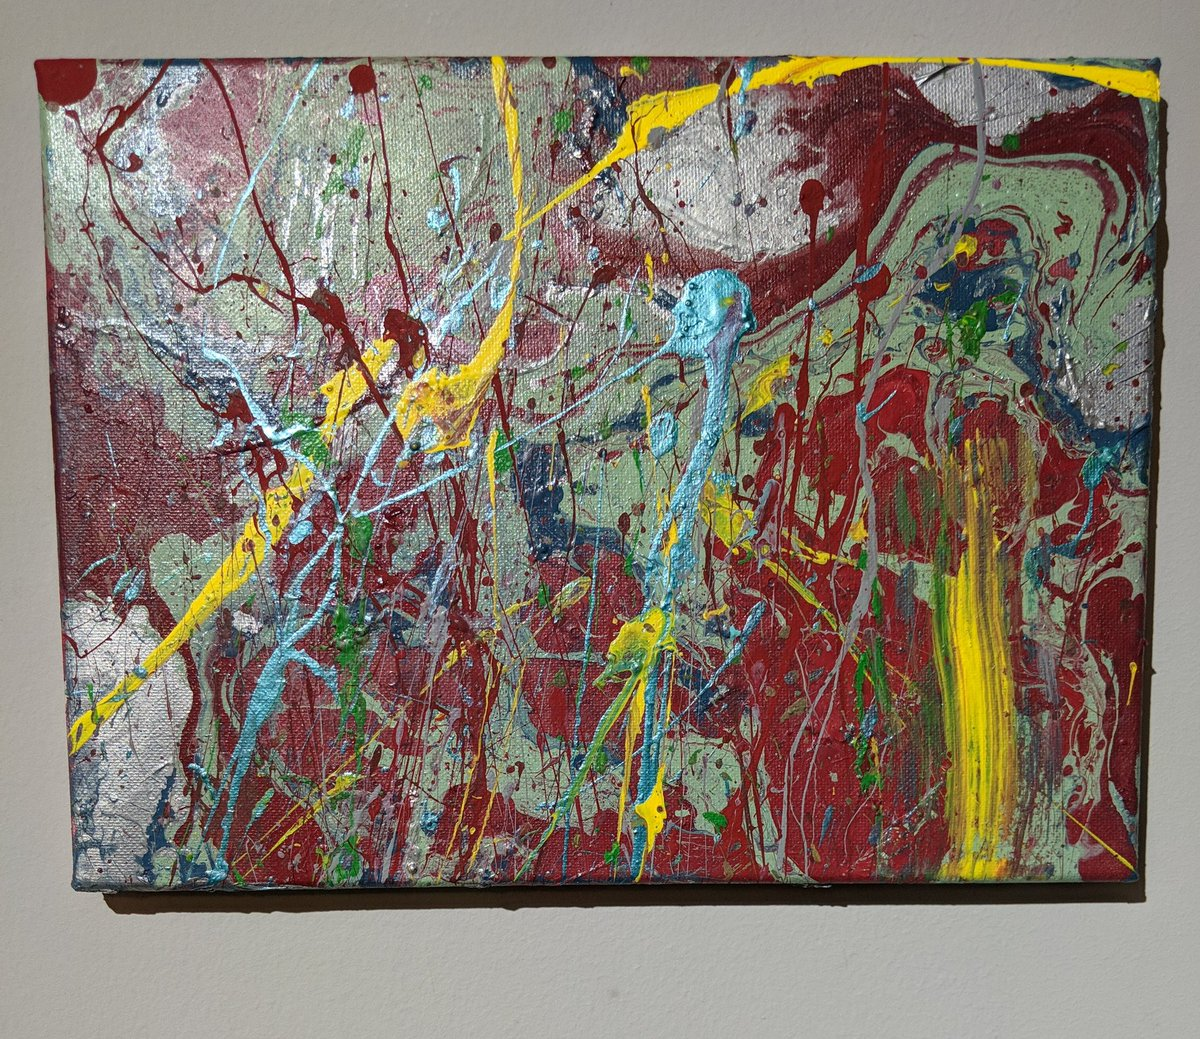 Wanting to share our masterpiece that could be yours to own. Check it out #eBay #painting #modernart #beauty #multicolor